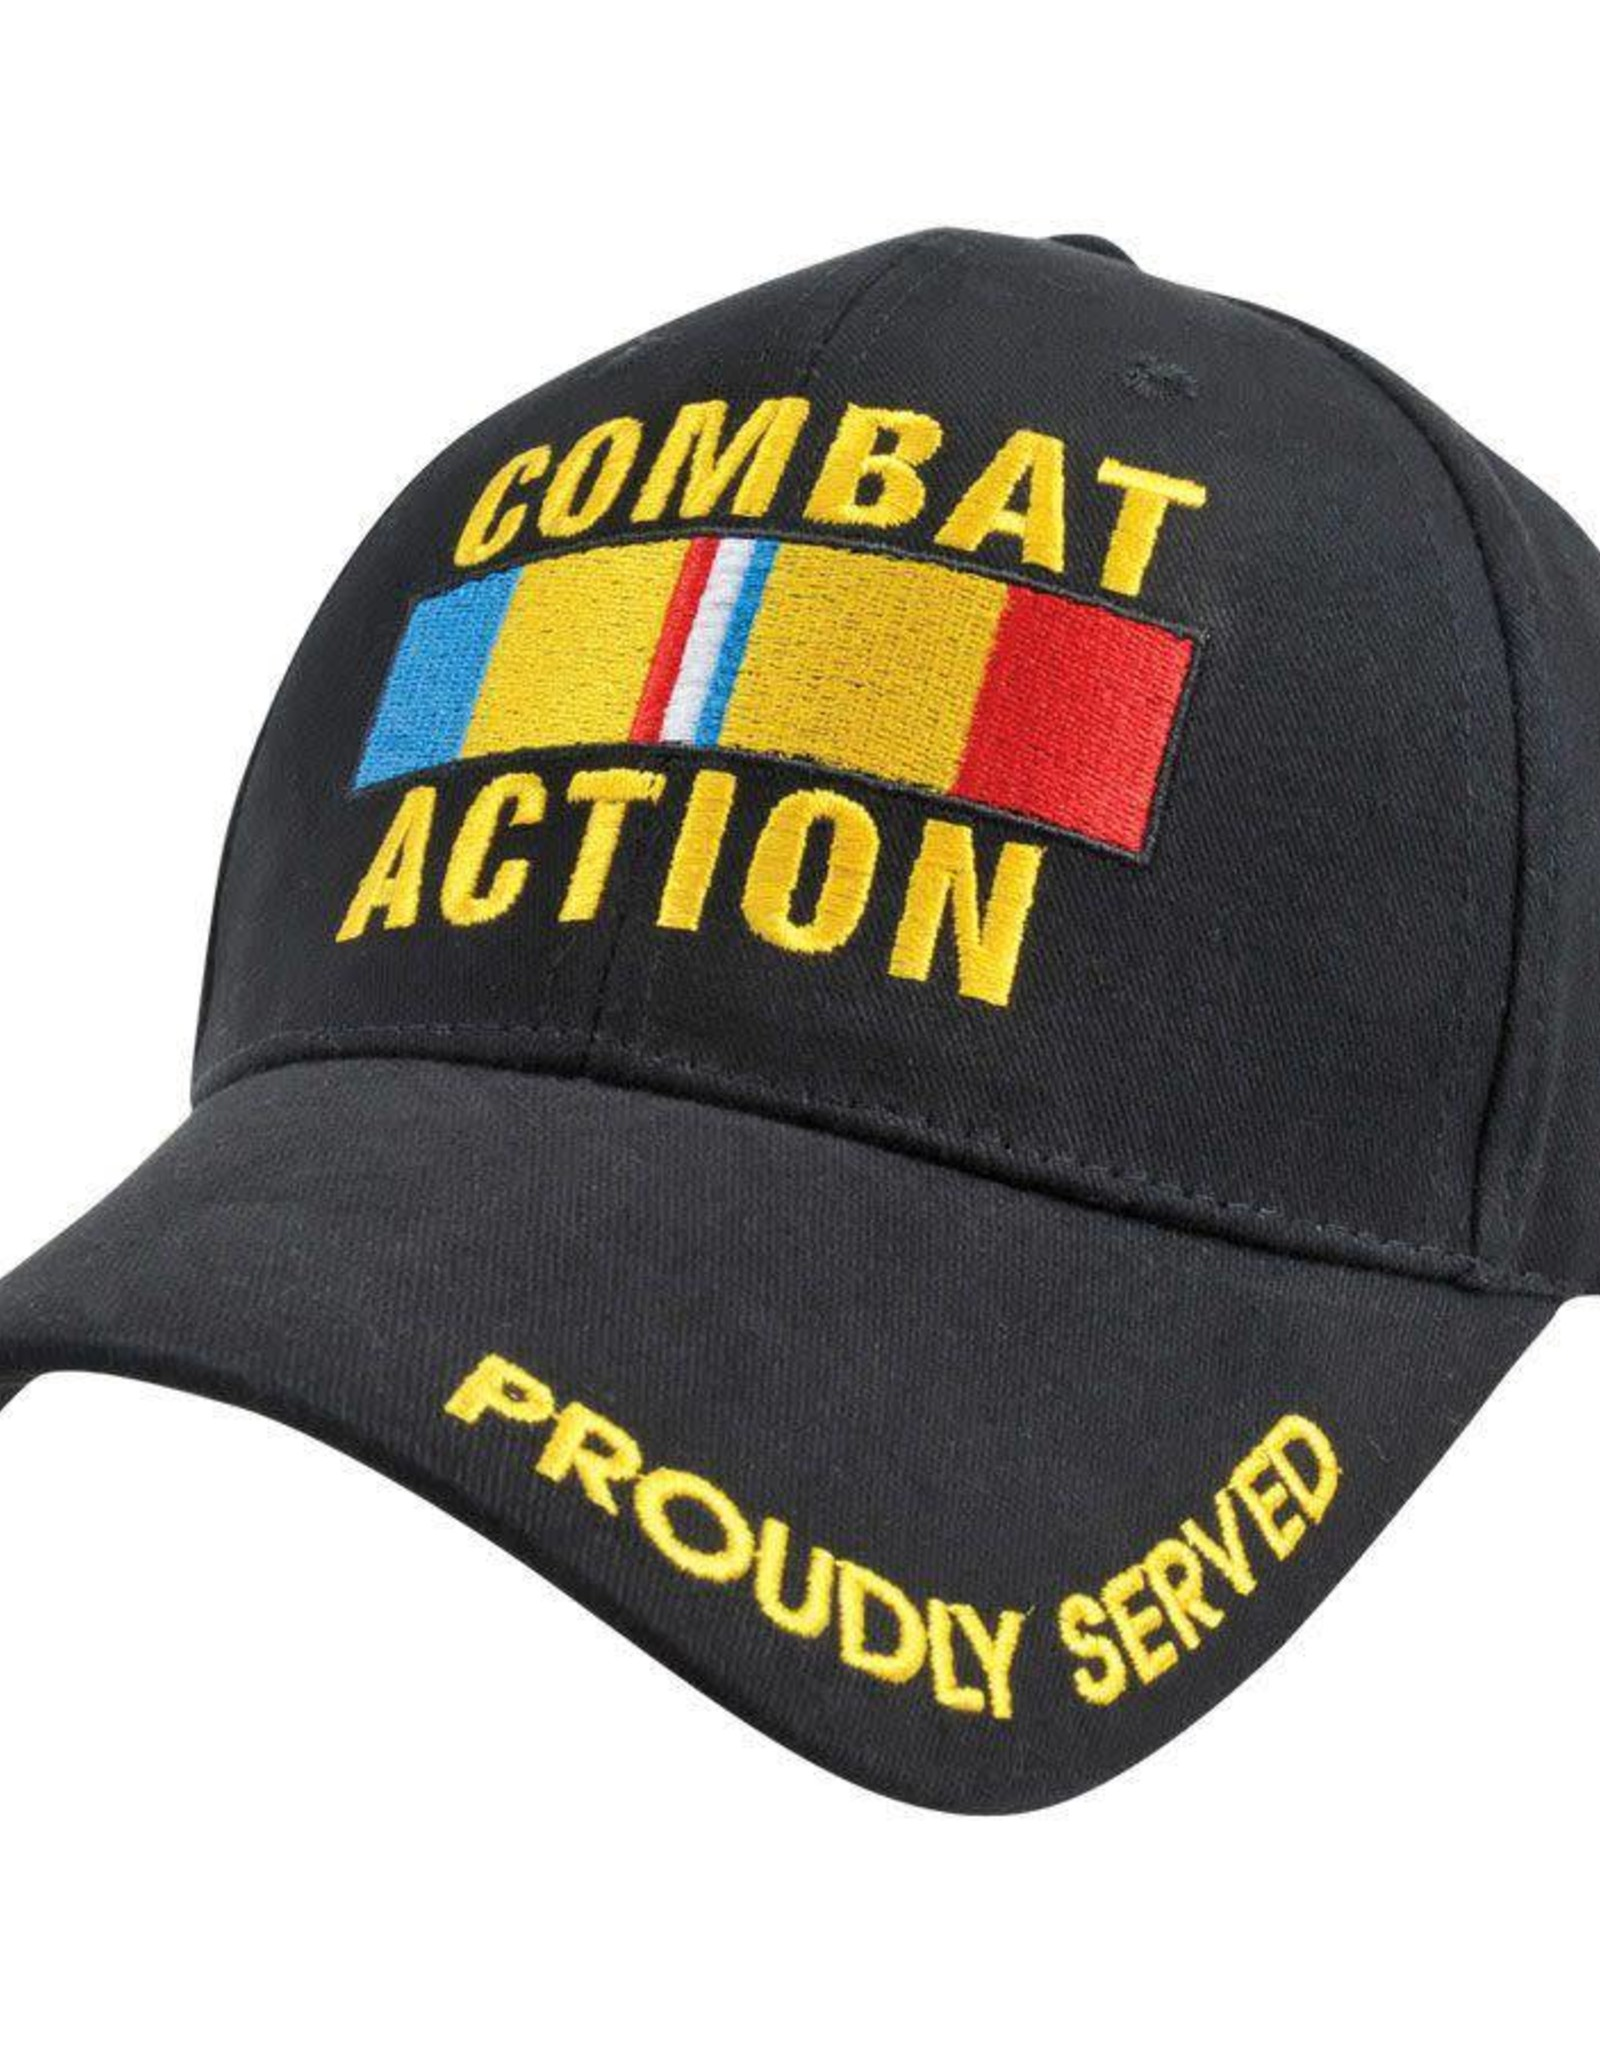 MidMil Marine Corps/Navy Combat Action Hat with Ribbon Black